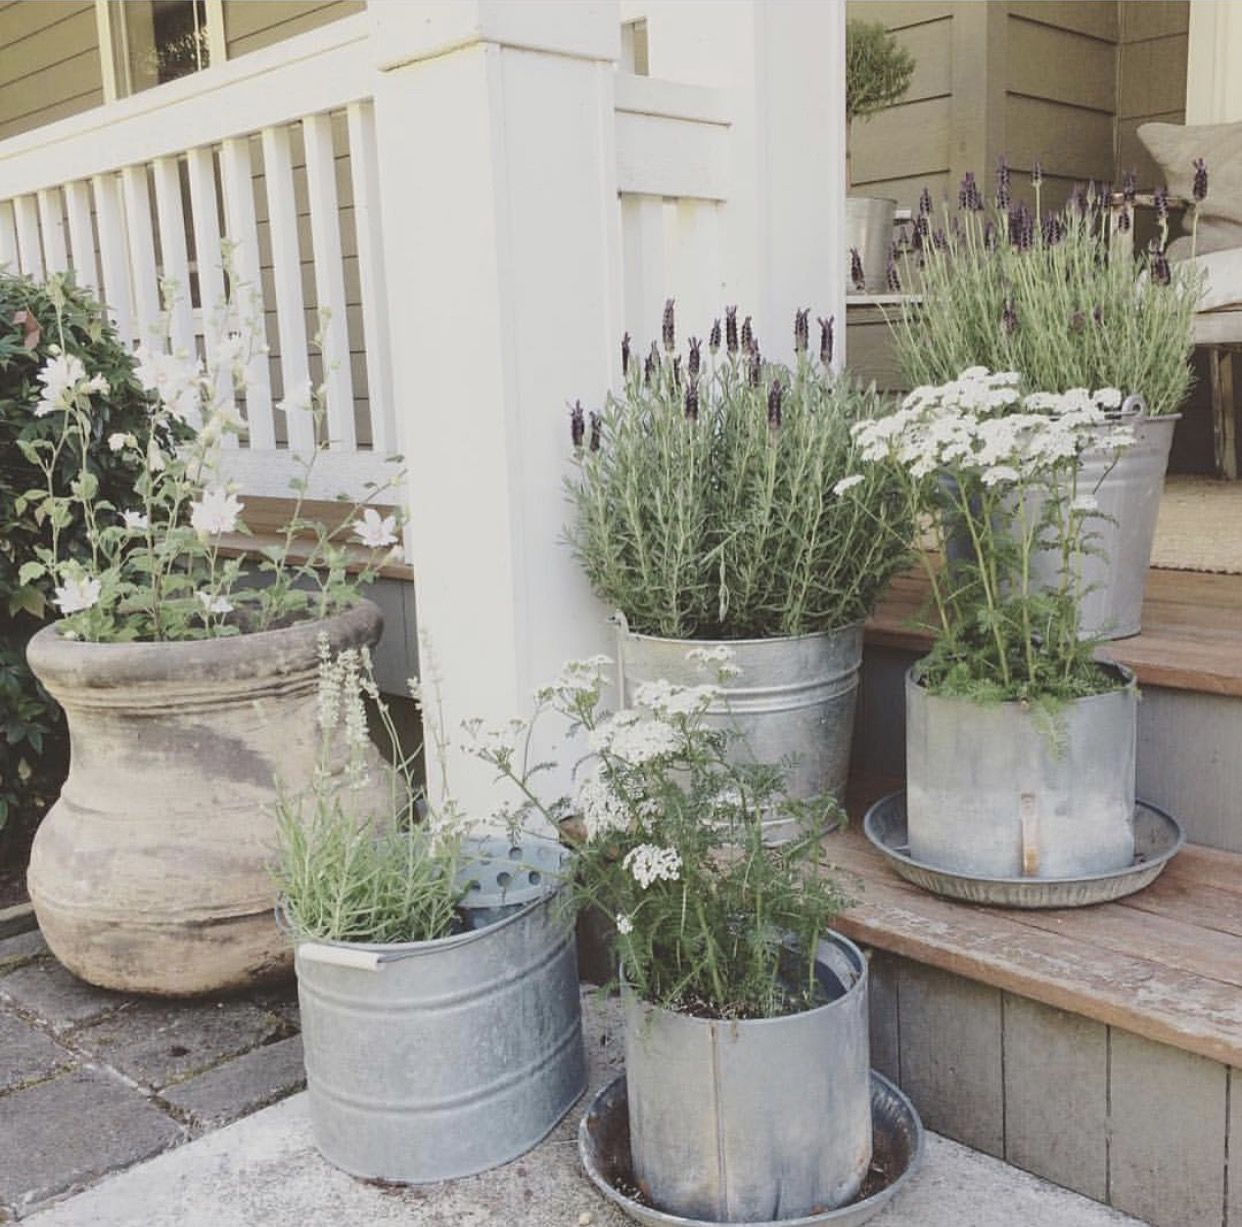 Pinterest Shabby Chic Garten A Blog About Farmhouse Style Design Country Living Home